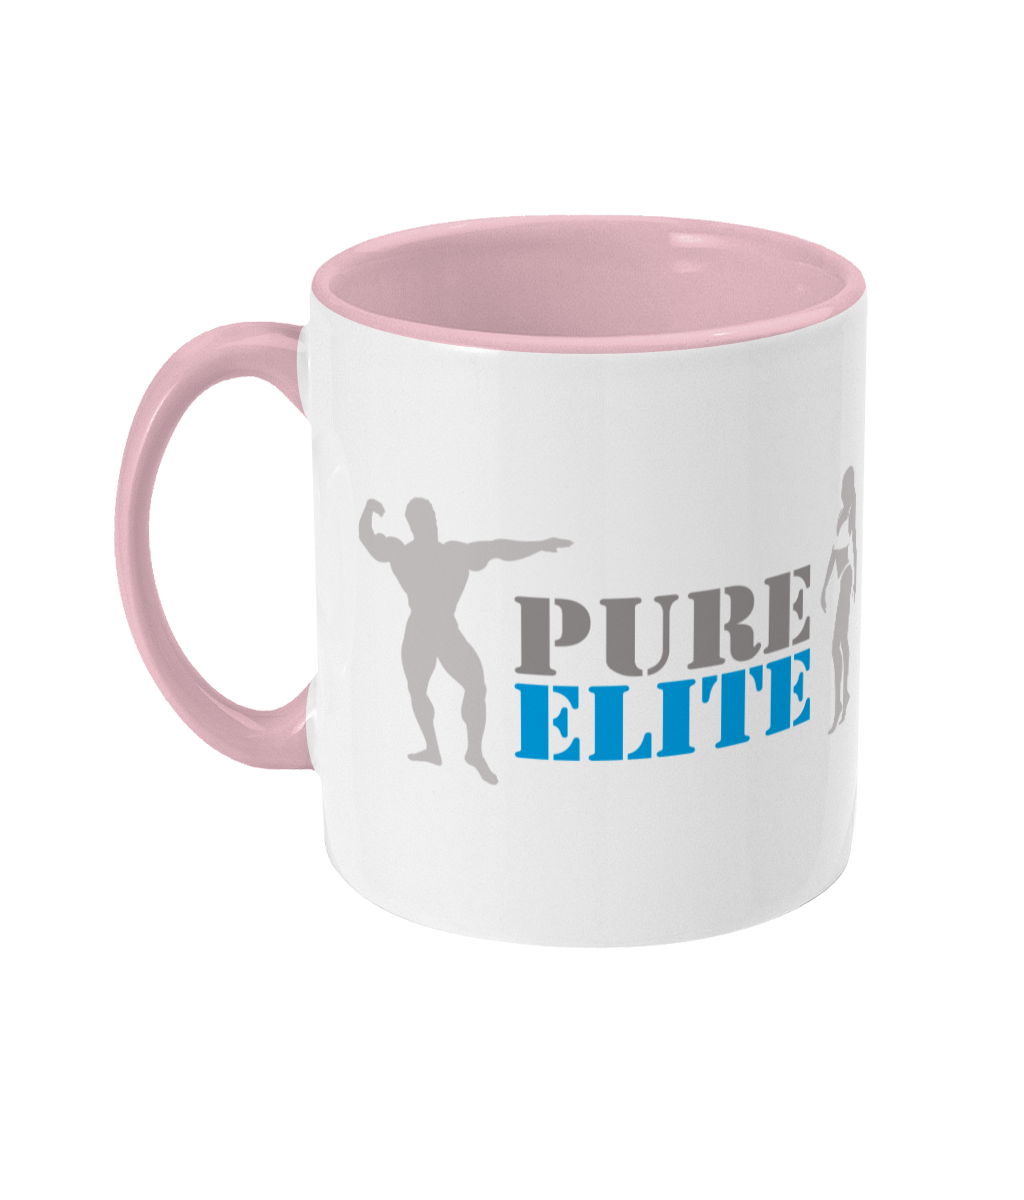 Two Toned Mug Pure Elite Logo with Light Grey Figures